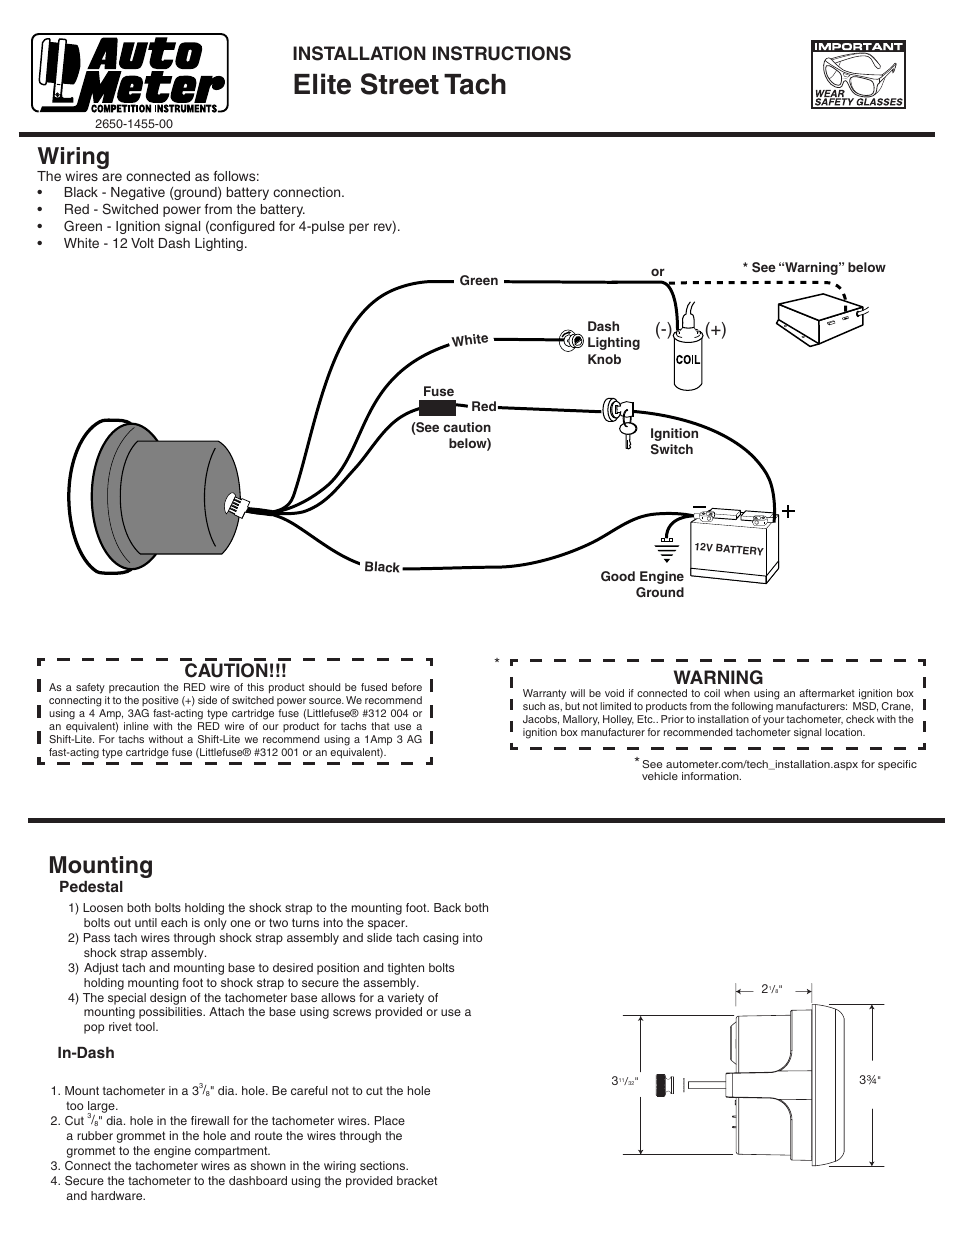 Wiring A Tachometer Diagram - wiring diagram on the net on